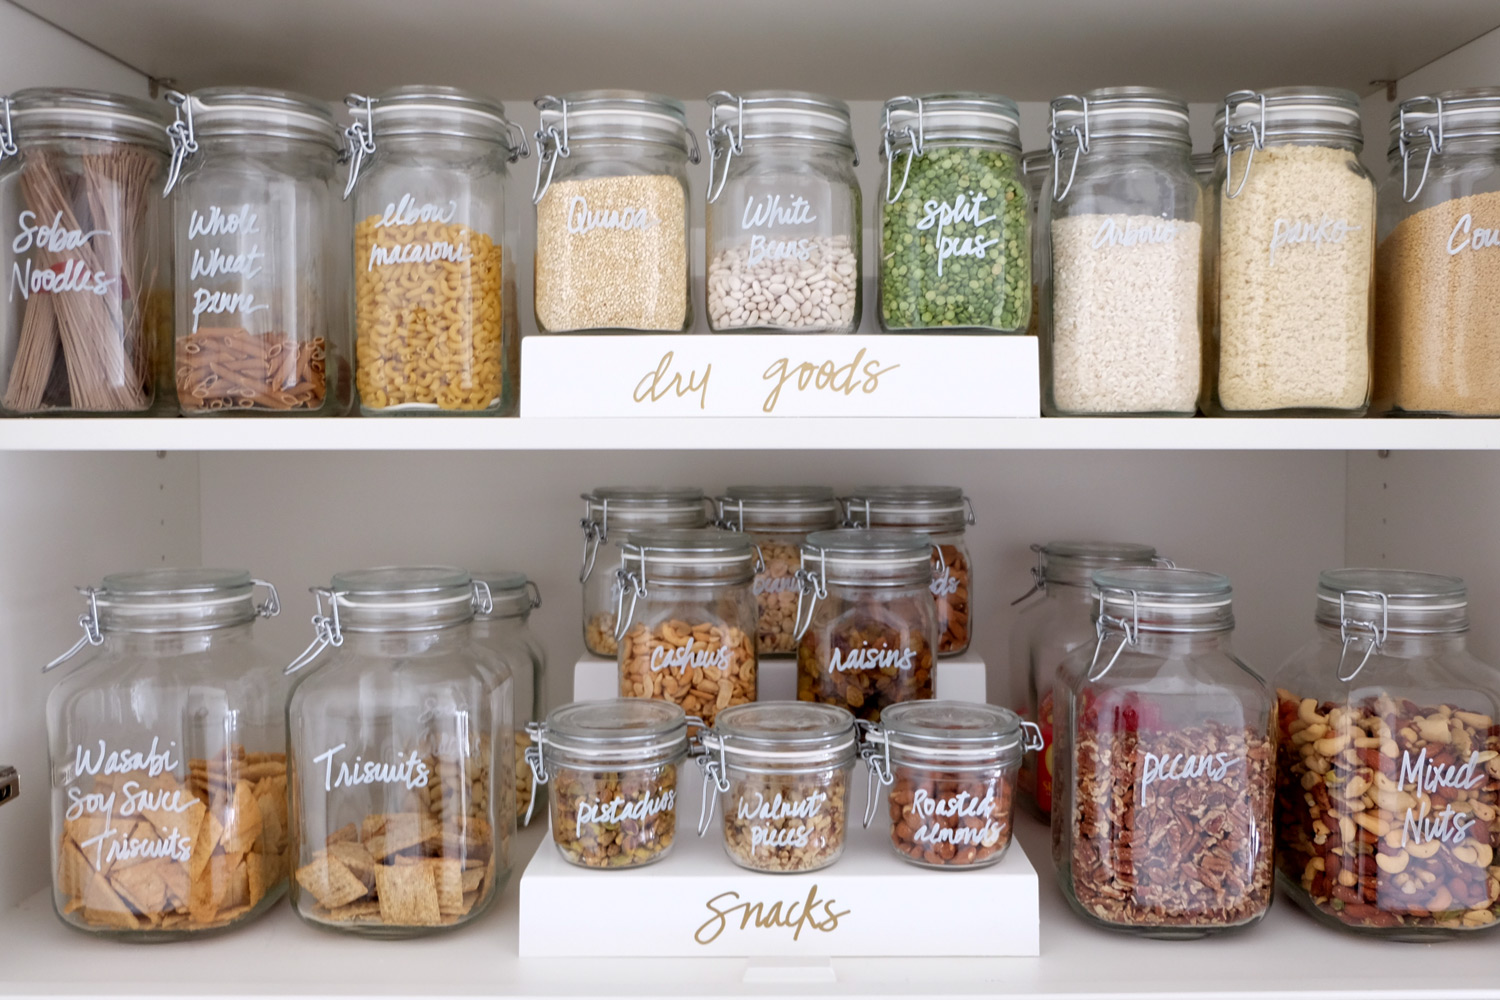 pantry organization canisters of dry goods and snacks